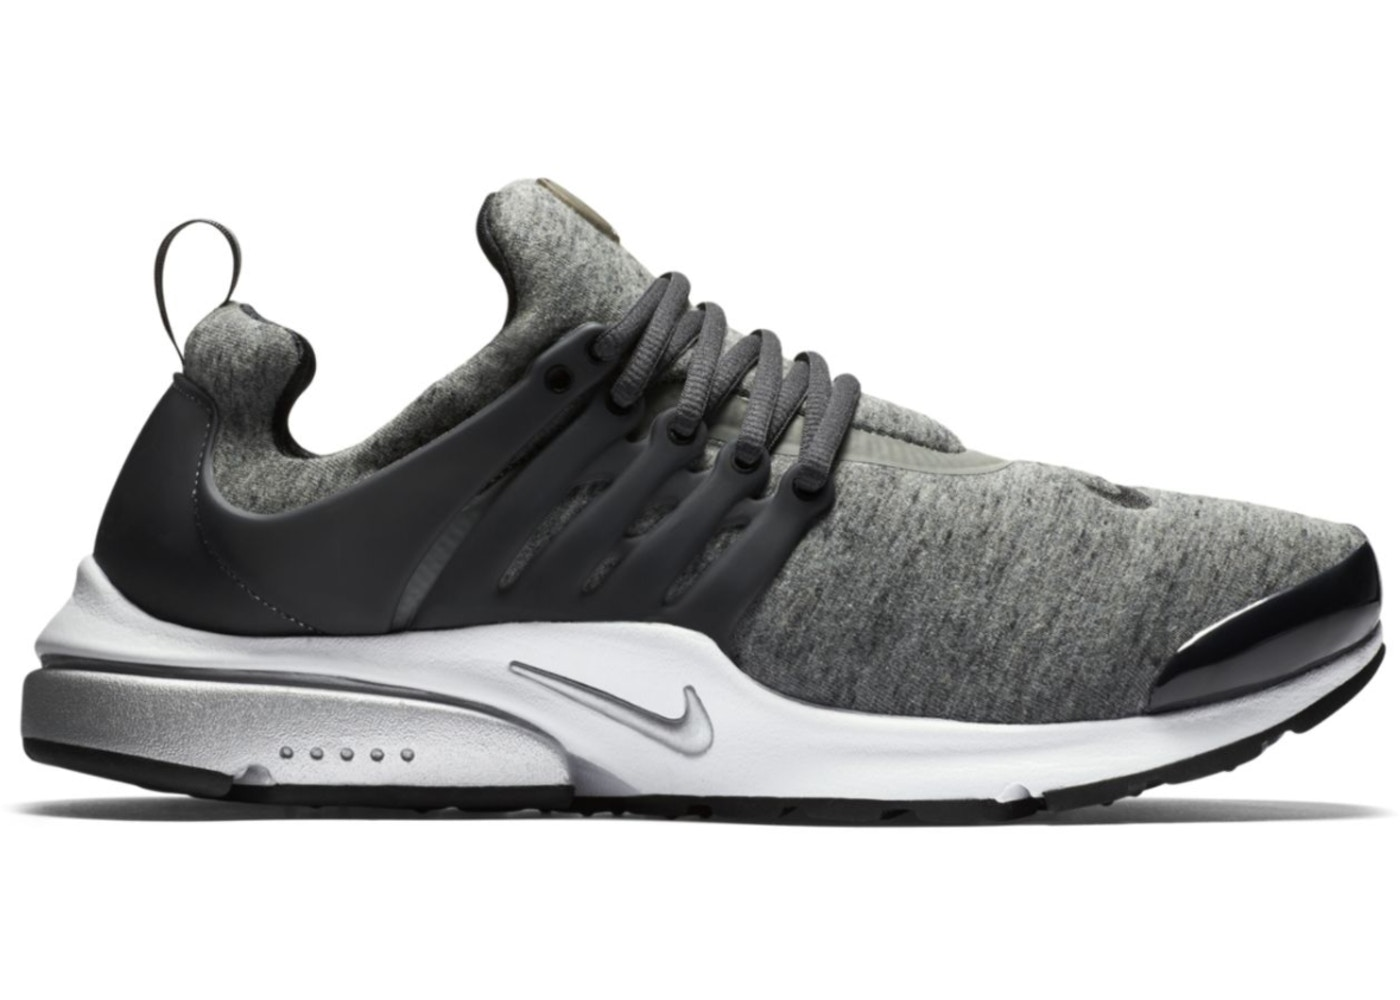 e4bca4d4da949 Air Presto Tech Fleece Grey - 812307-002